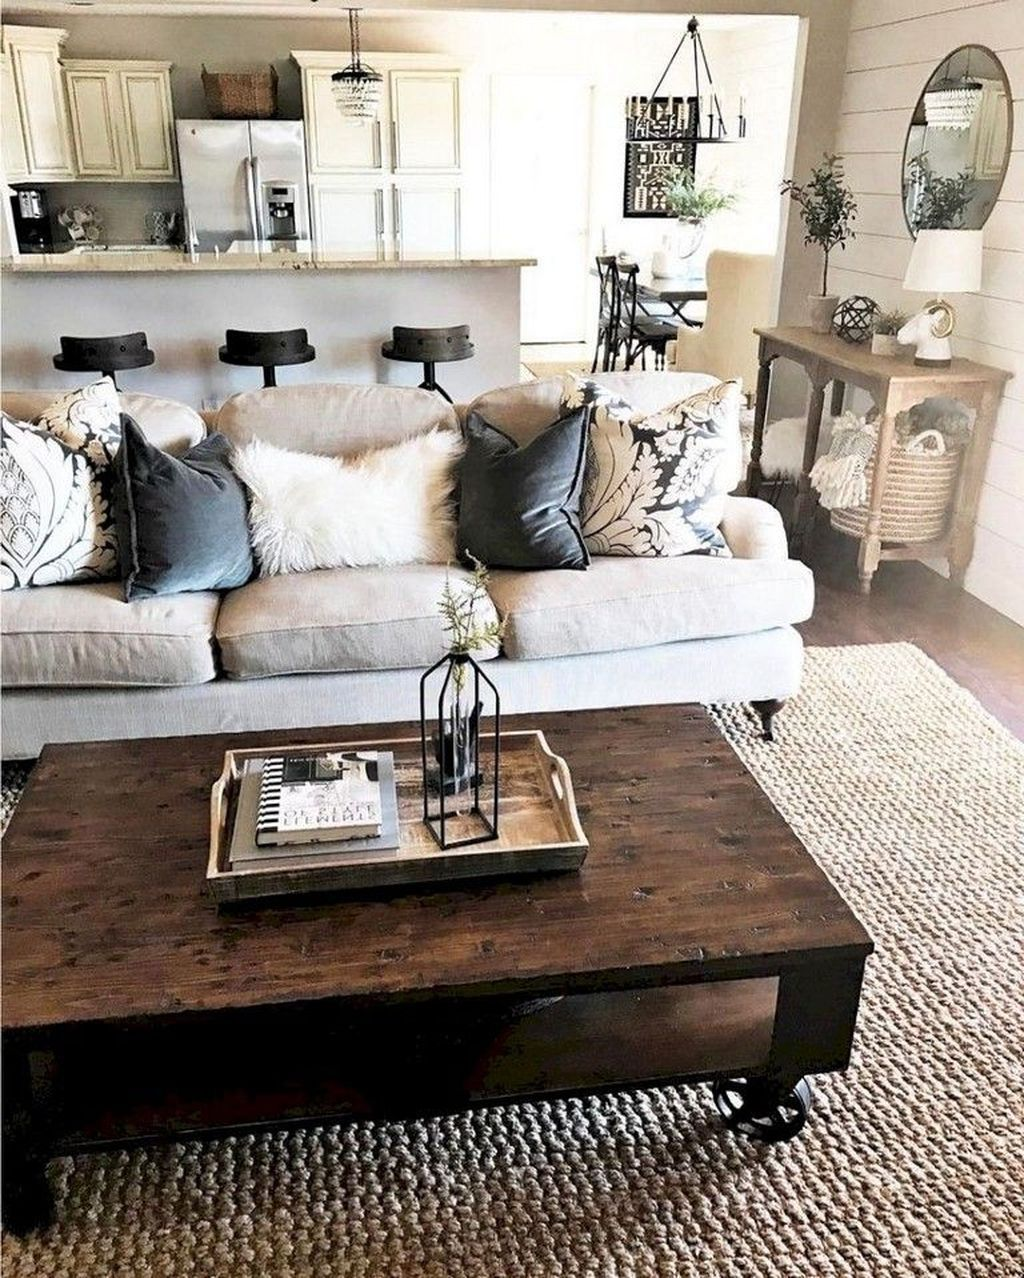 10 Awesome Music Inspired Home Decor Ideas: 35 Awesome Rustic Farmhouse Living Room Decor Ideas